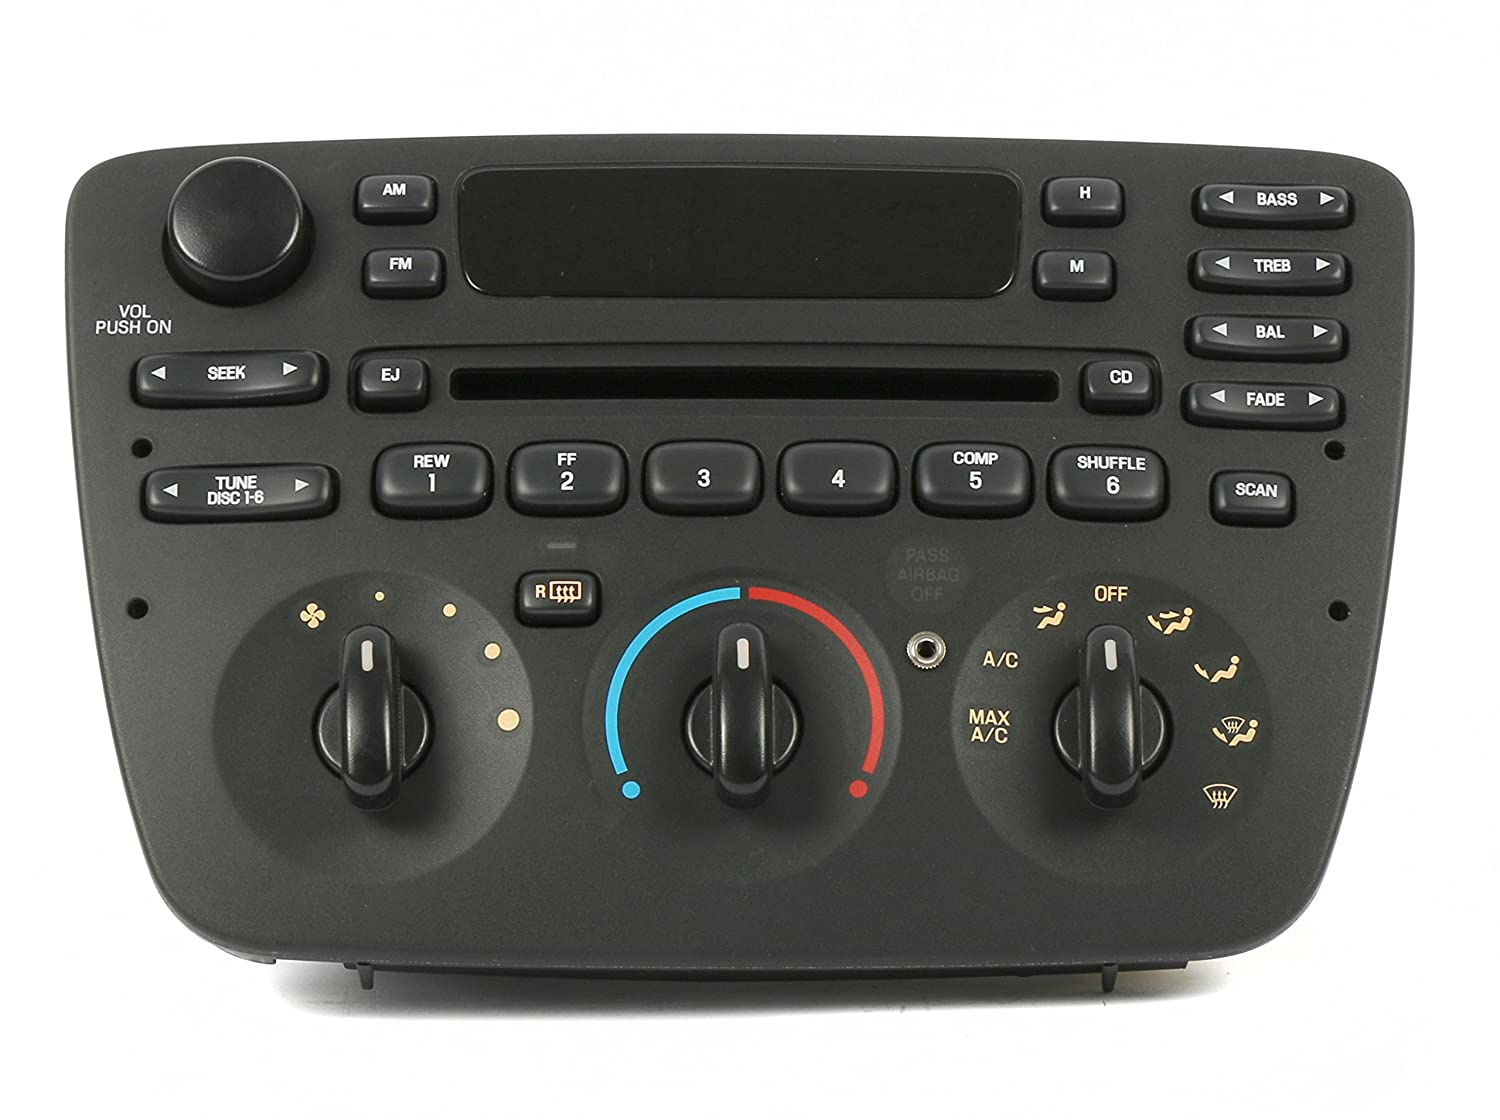 Amazon.com: Ford Taurus Sable 04-07 AM FM CD Player Radio w Aux Input - 90  Day Warranty: Car Electronics